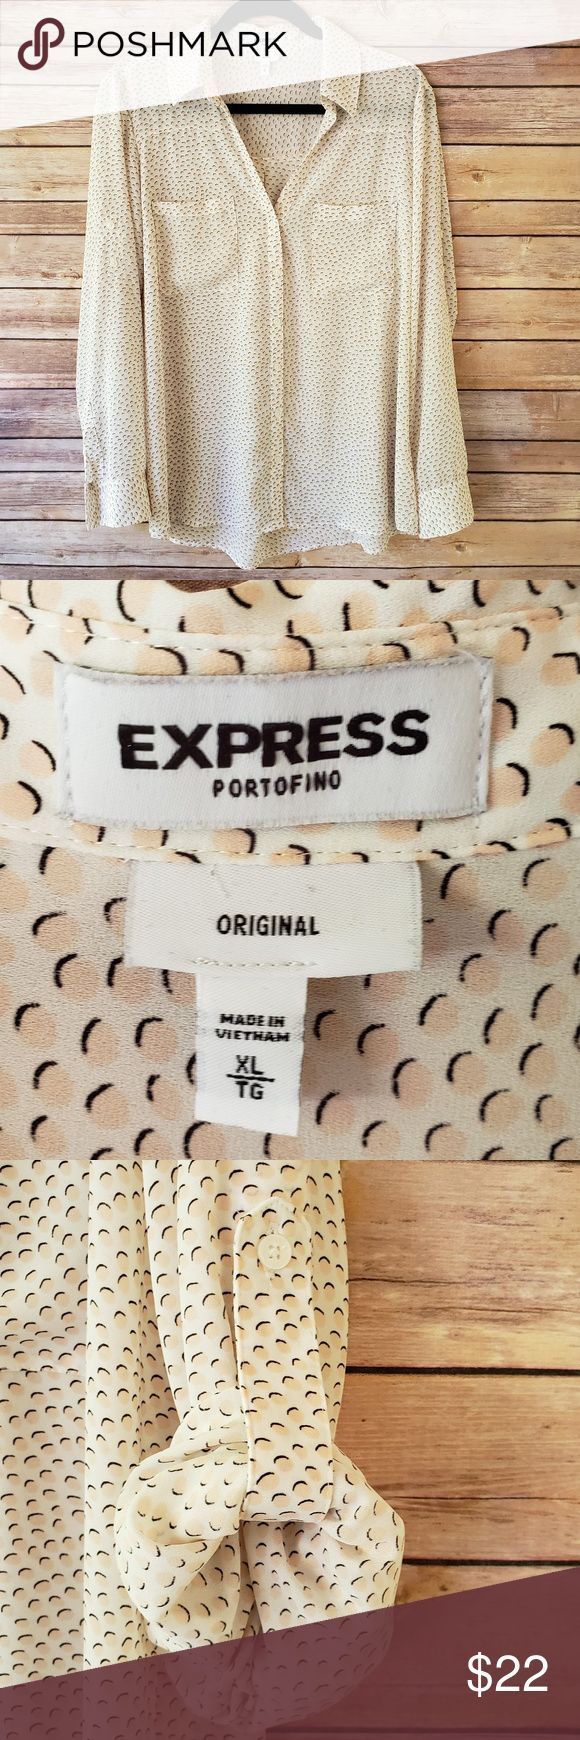 Express Portofino Shirt Original XL Blush Dots EUC Sadly this cute top has only … – Adventure and Nature Sports Lovers